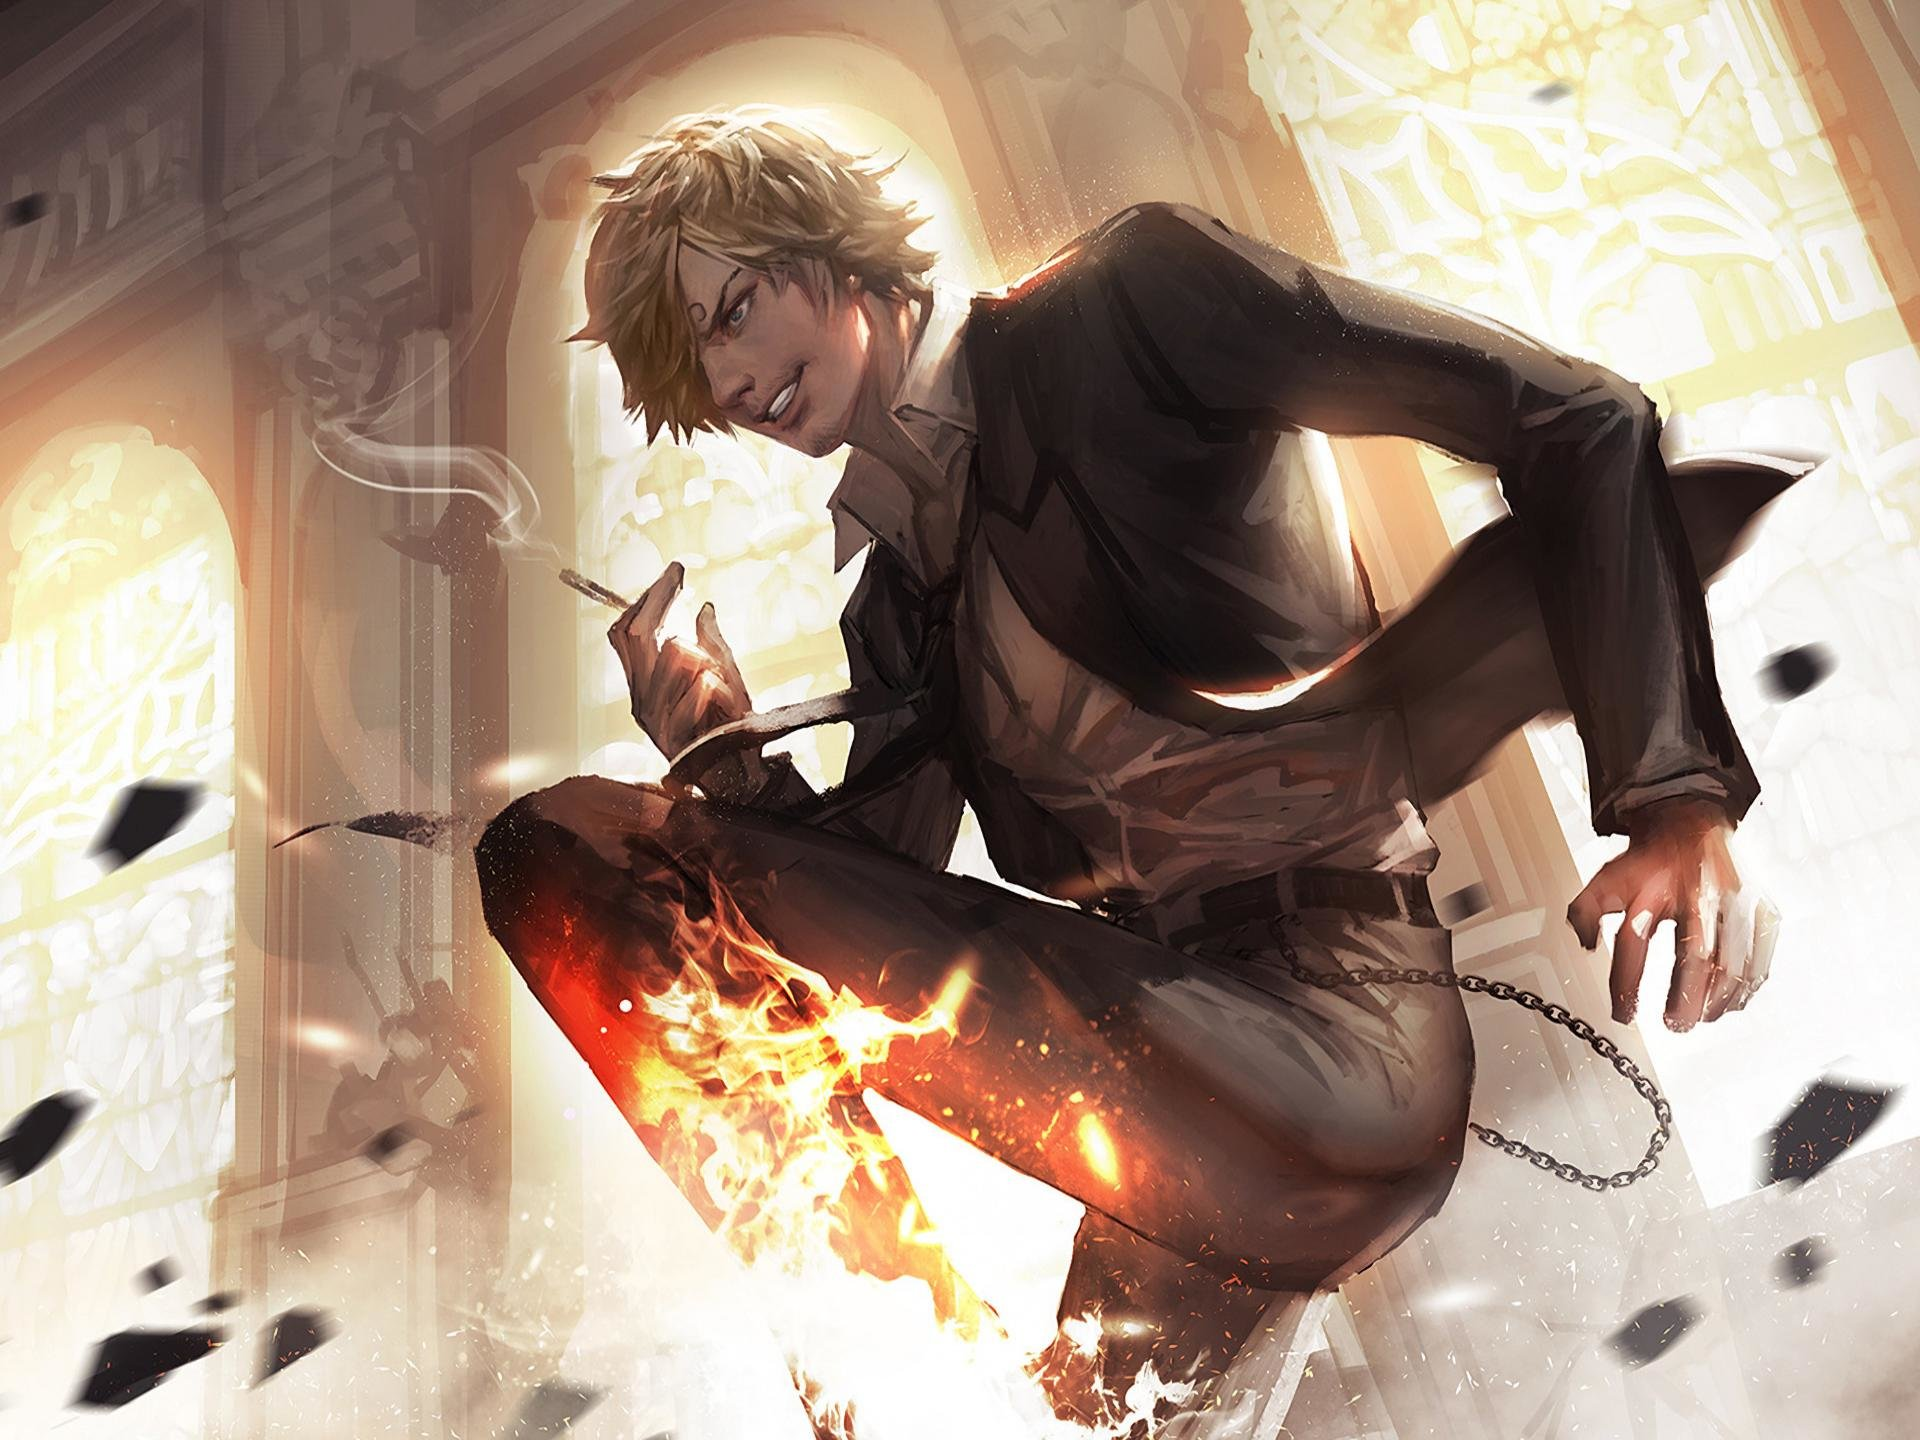 Download hd 1920x1440 Sanji (One Piece) PC background ID:314289 for free